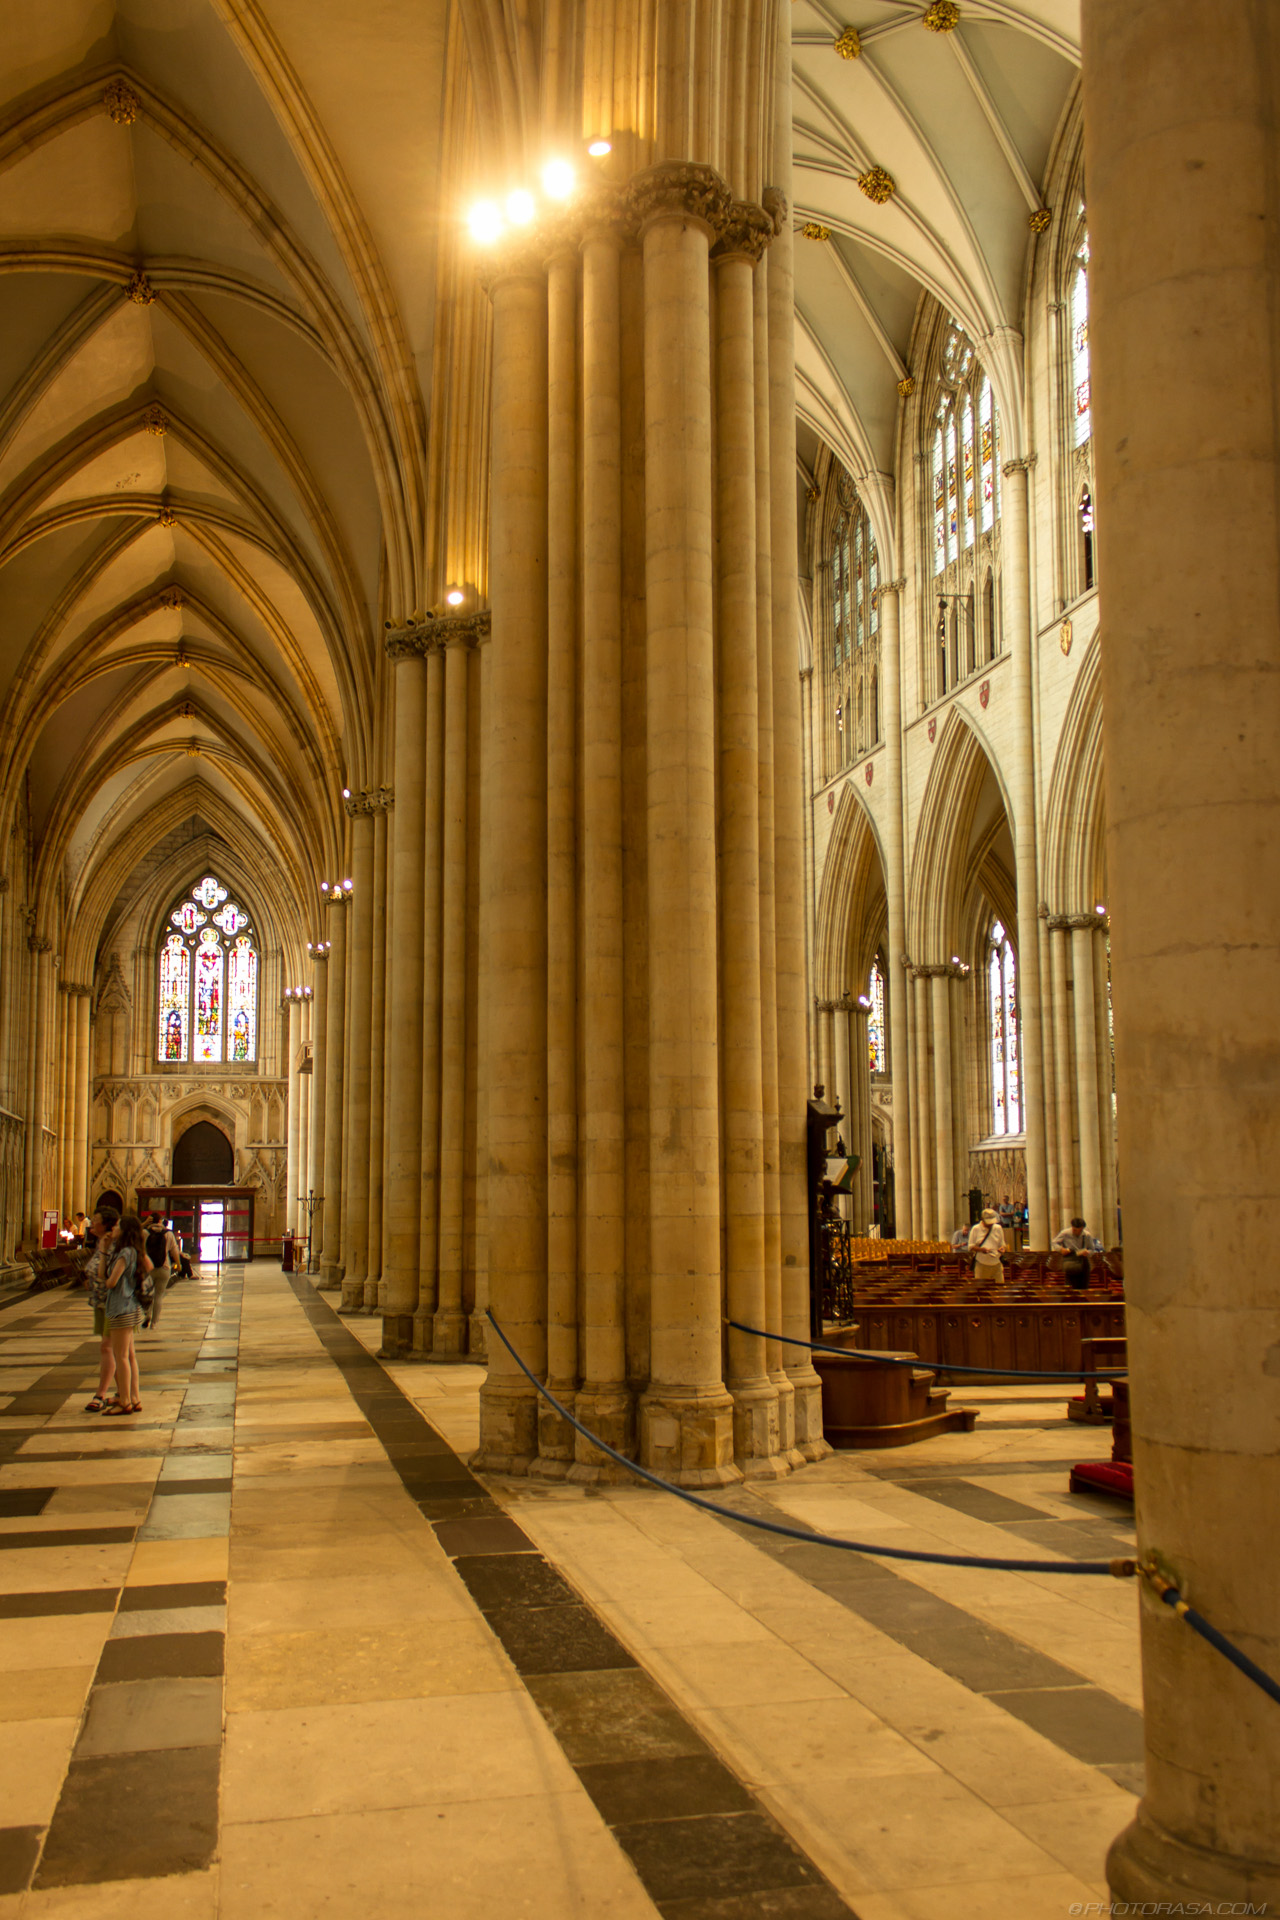 http://photorasa.com/yorkminster-cathedral/great-pillars-of-the-earth/